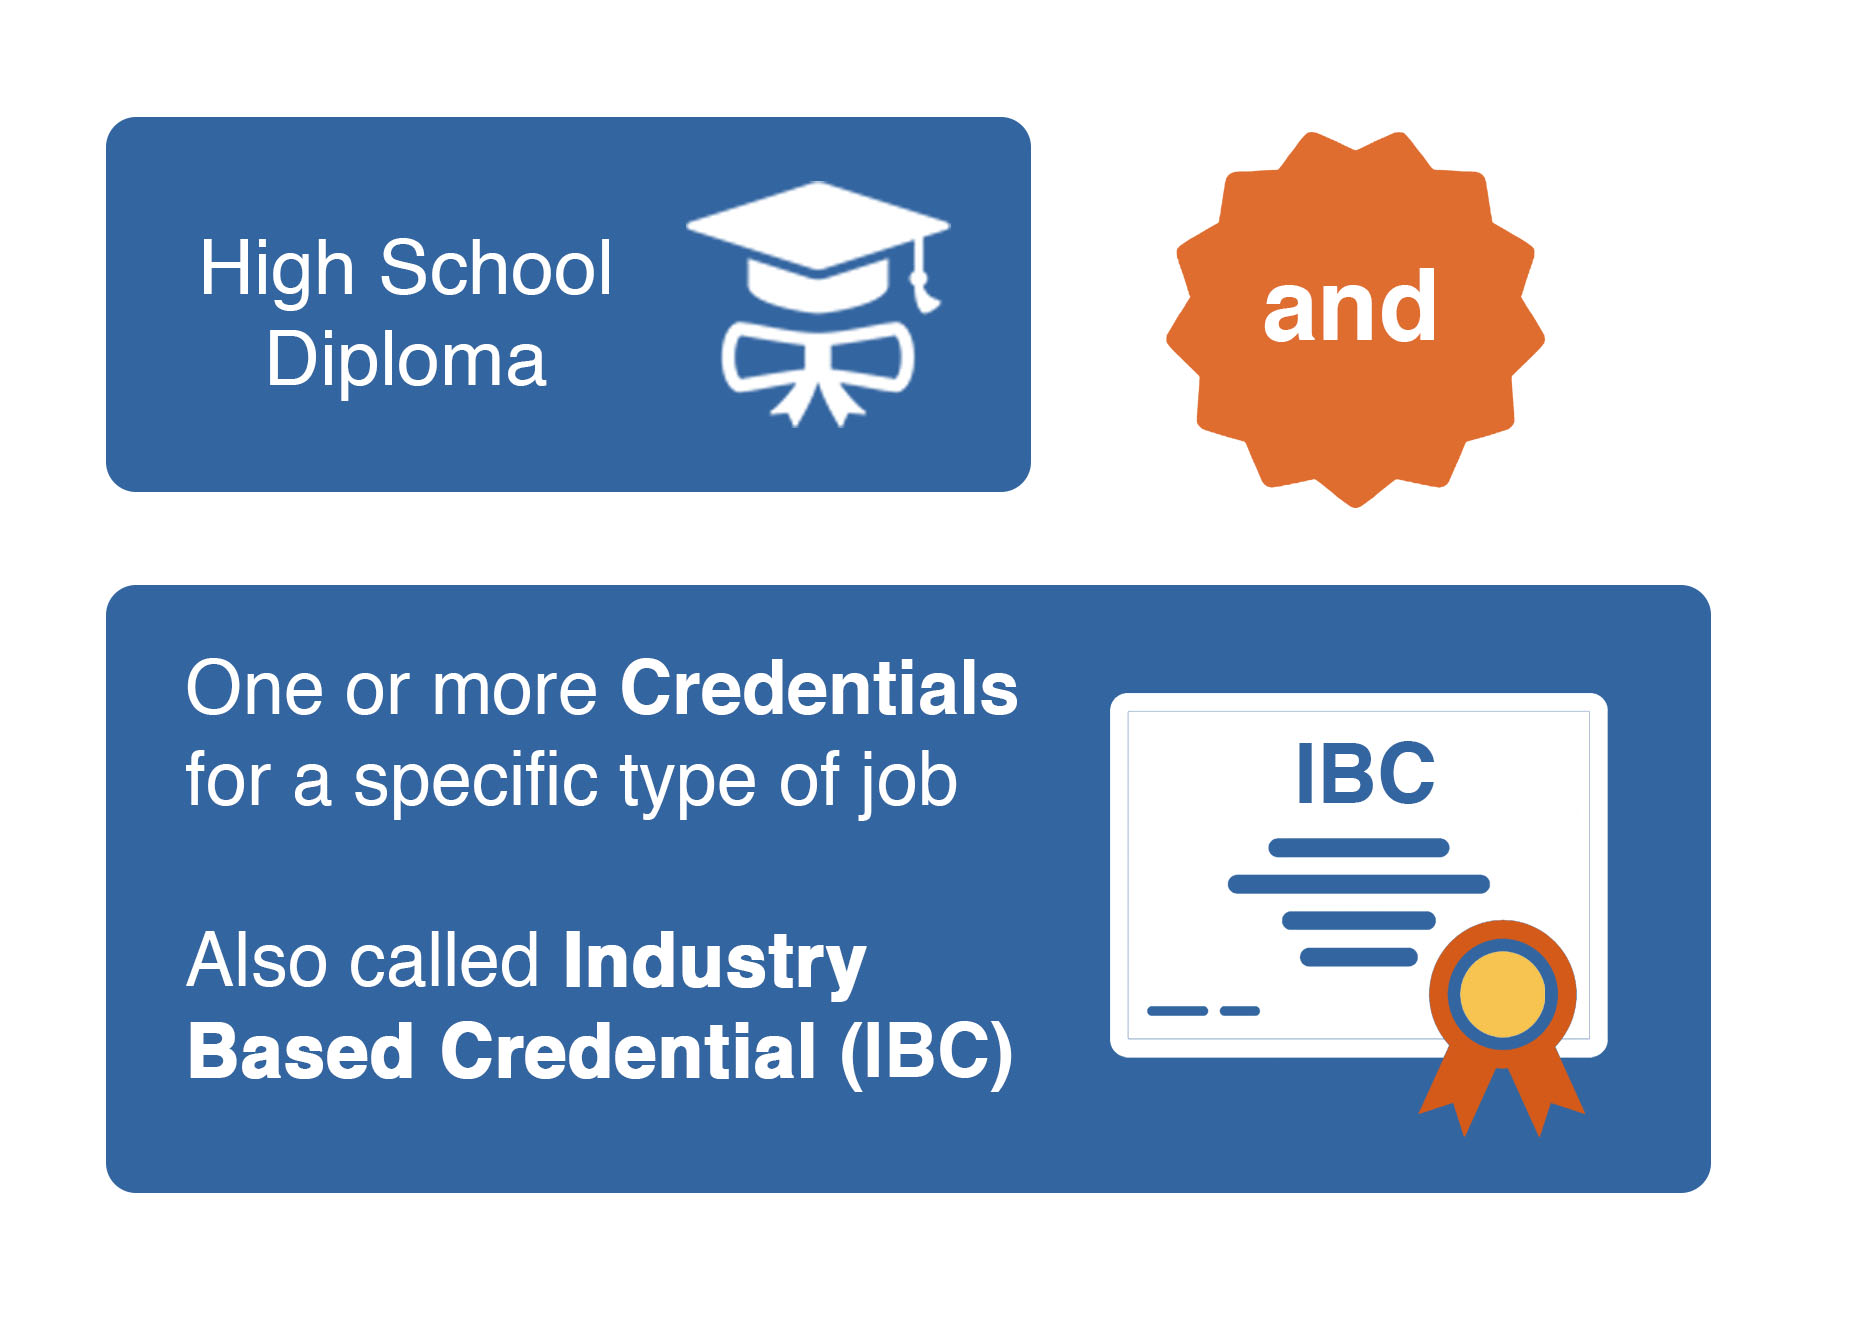 Image with the subject 'What do you get when you graduate' above the text 'High School Diploma and one or more credentials for a specific type of job. Also called an Industry Based Credential (IBC)'